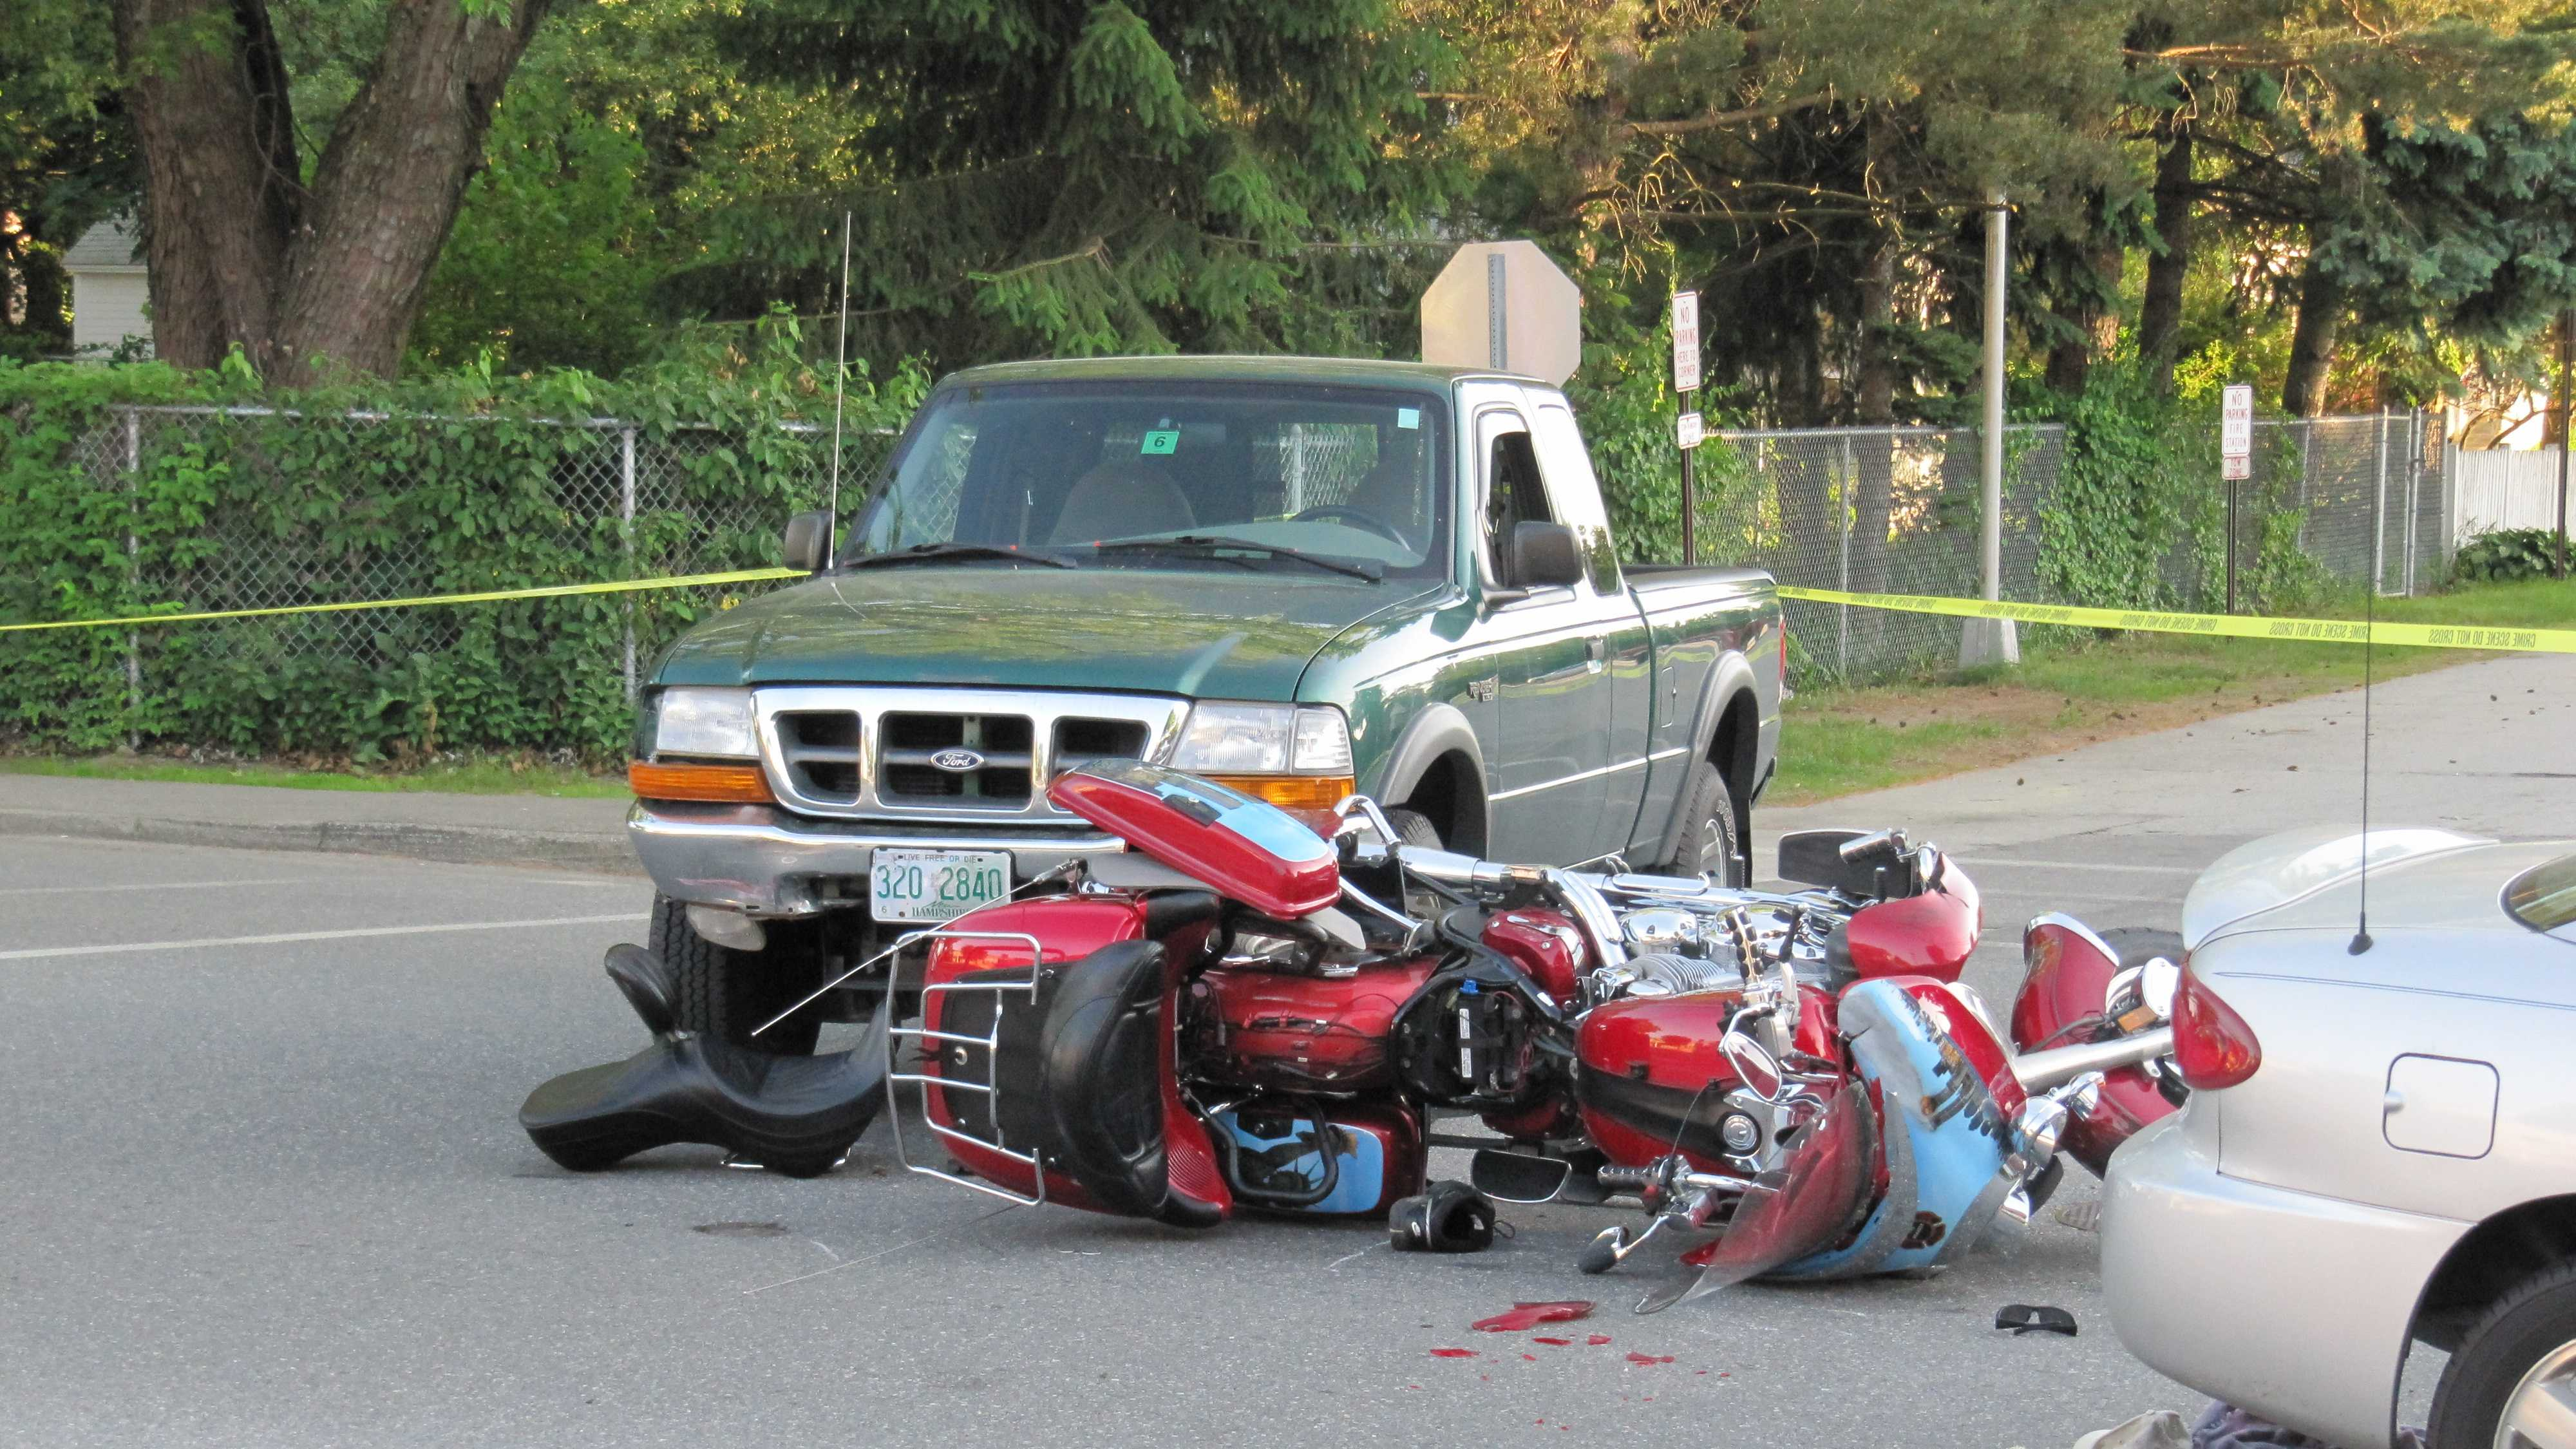 A Massachusetts man was seriously hurt in an accident in Hudson when his motorcycle collided with a truck.